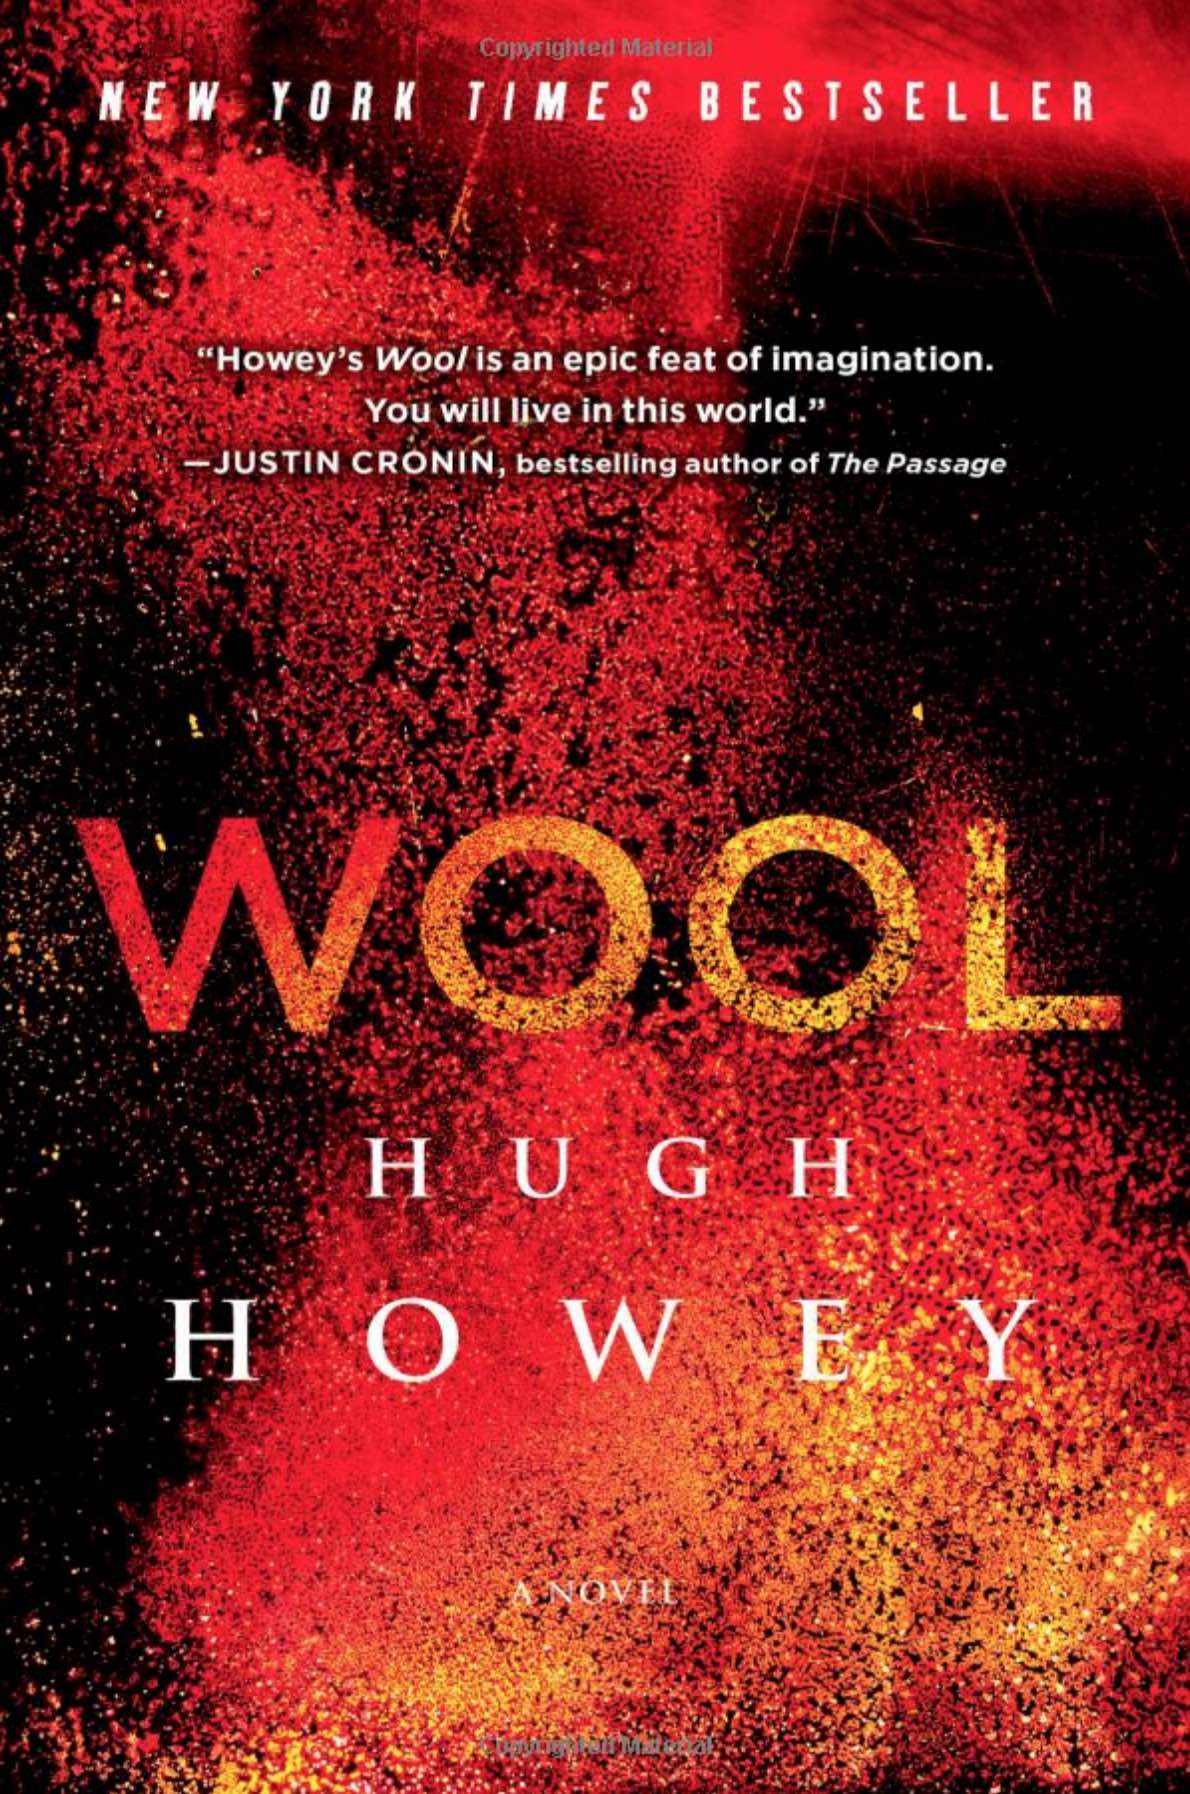 Cover of the book Wool